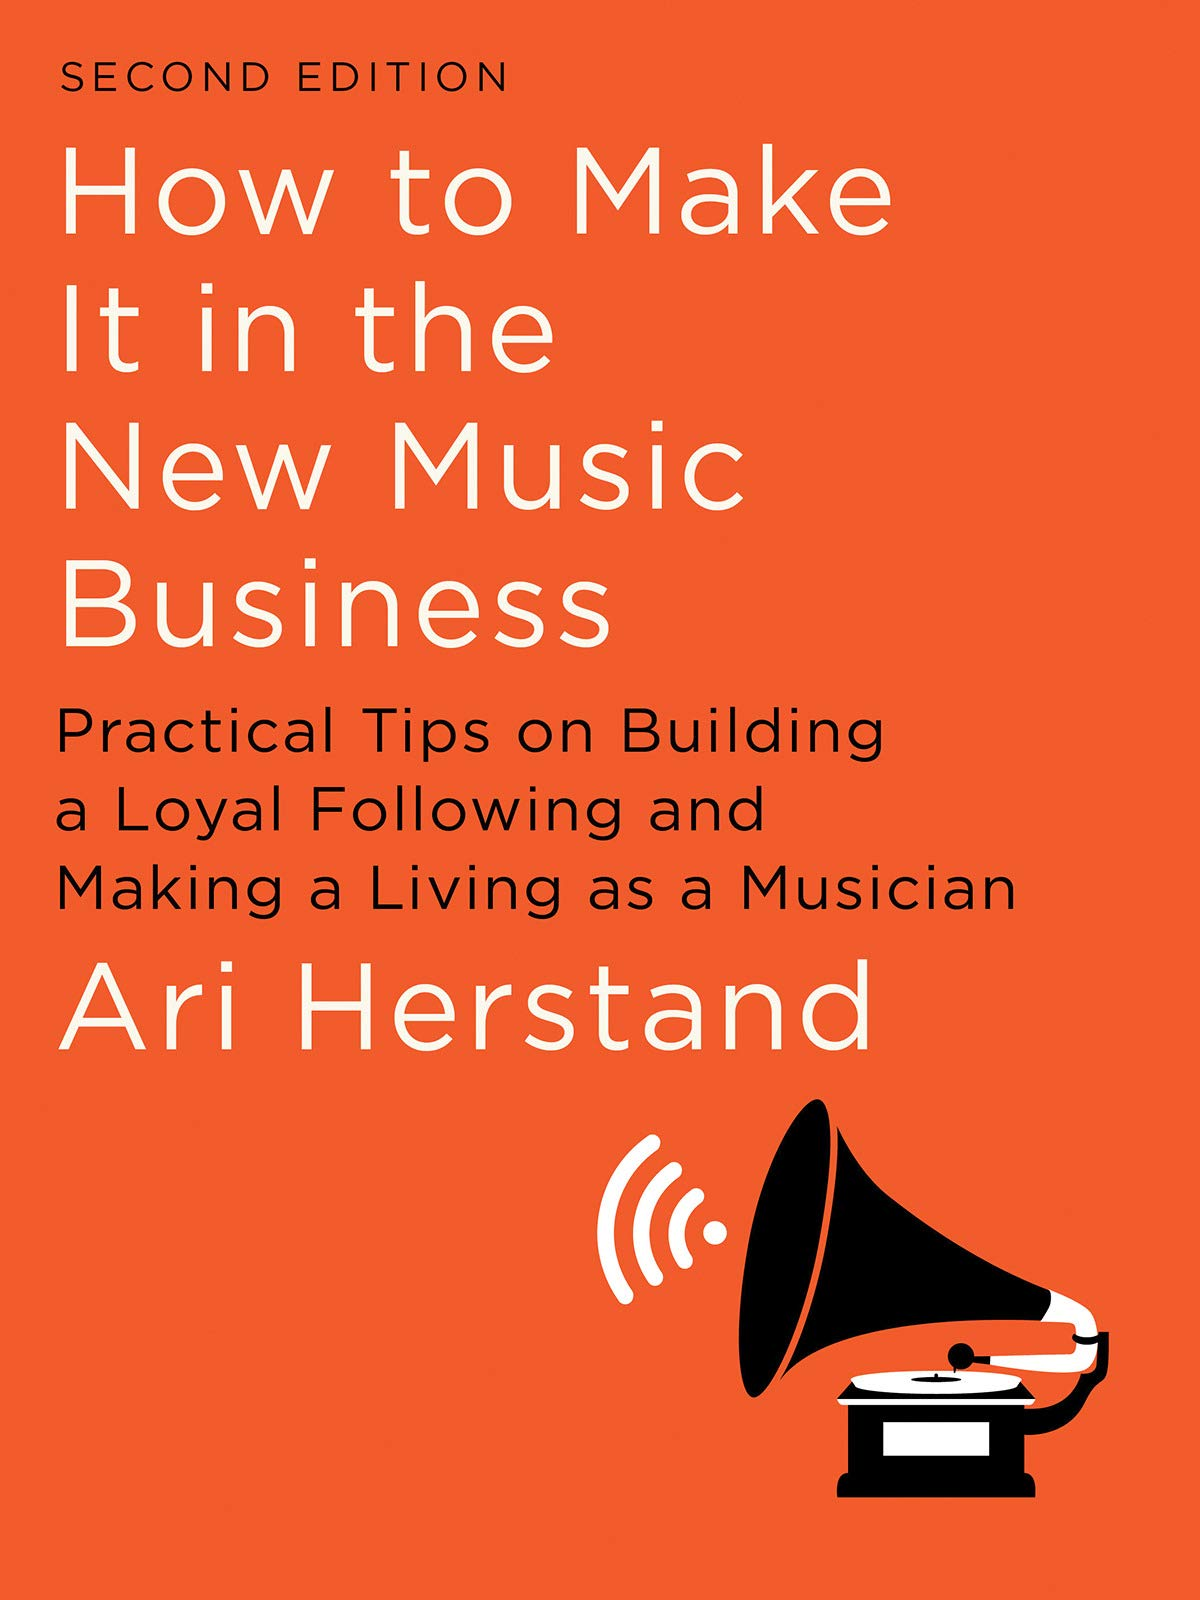 How To Make It in the New Music Business: Practical Tips on Building a Loyal Following and Making a Living as a Musician…